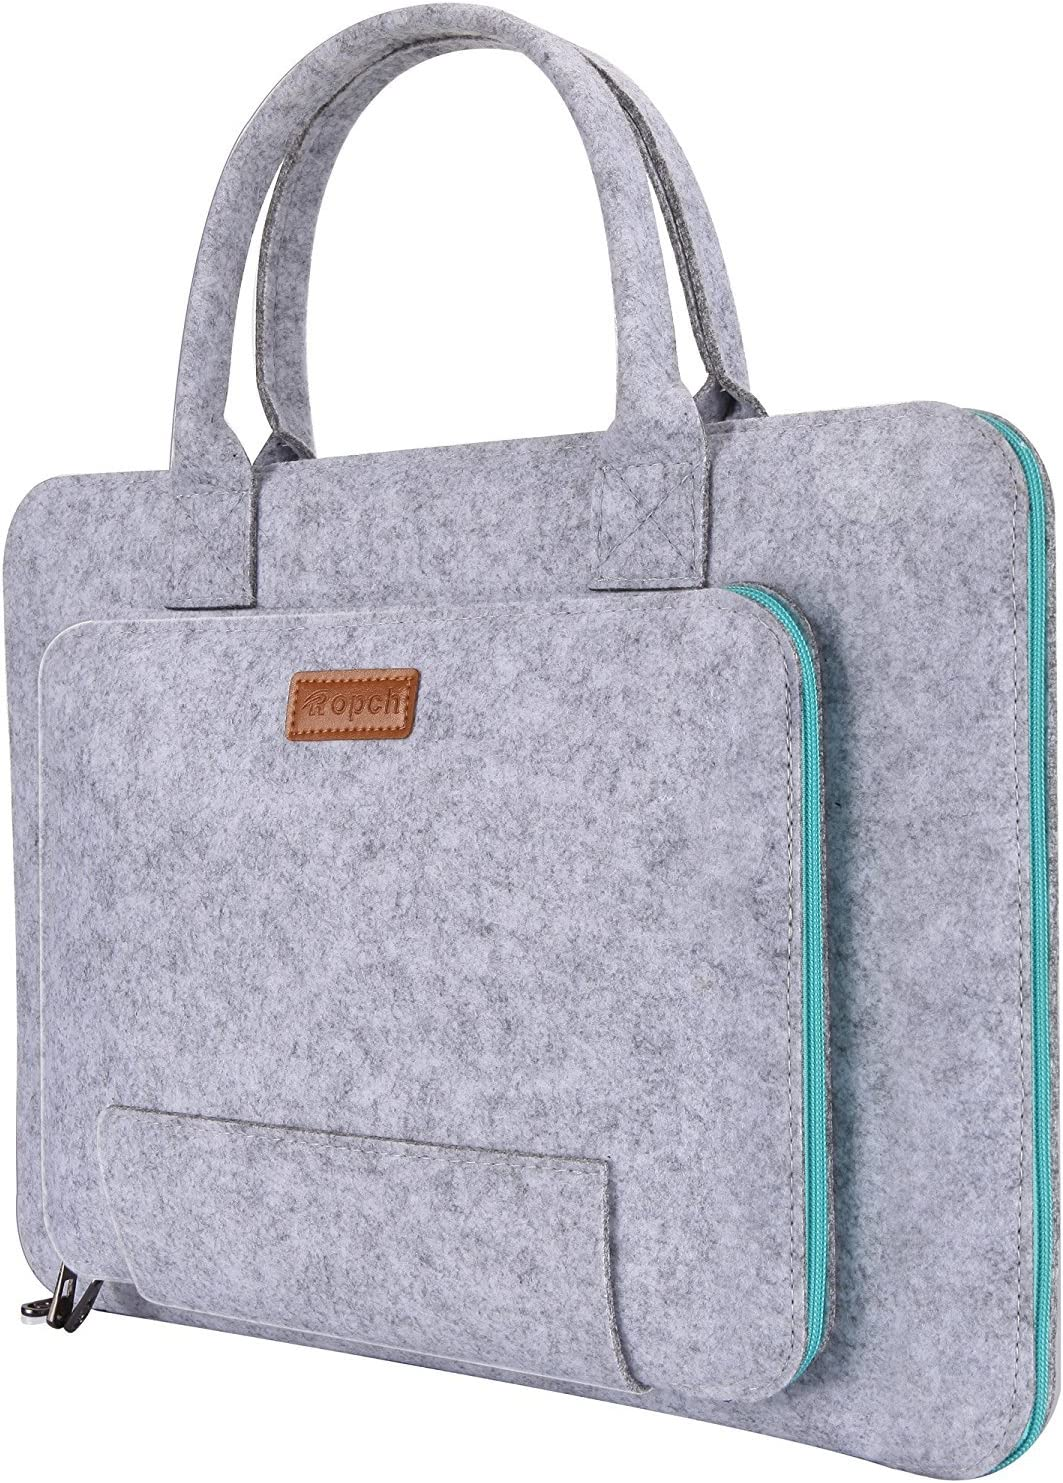 Ropch 15.6-Inch Felt Laptop Sleeve Handle Notebook Computer Carrying Case Bag Pouch Compatible with 15